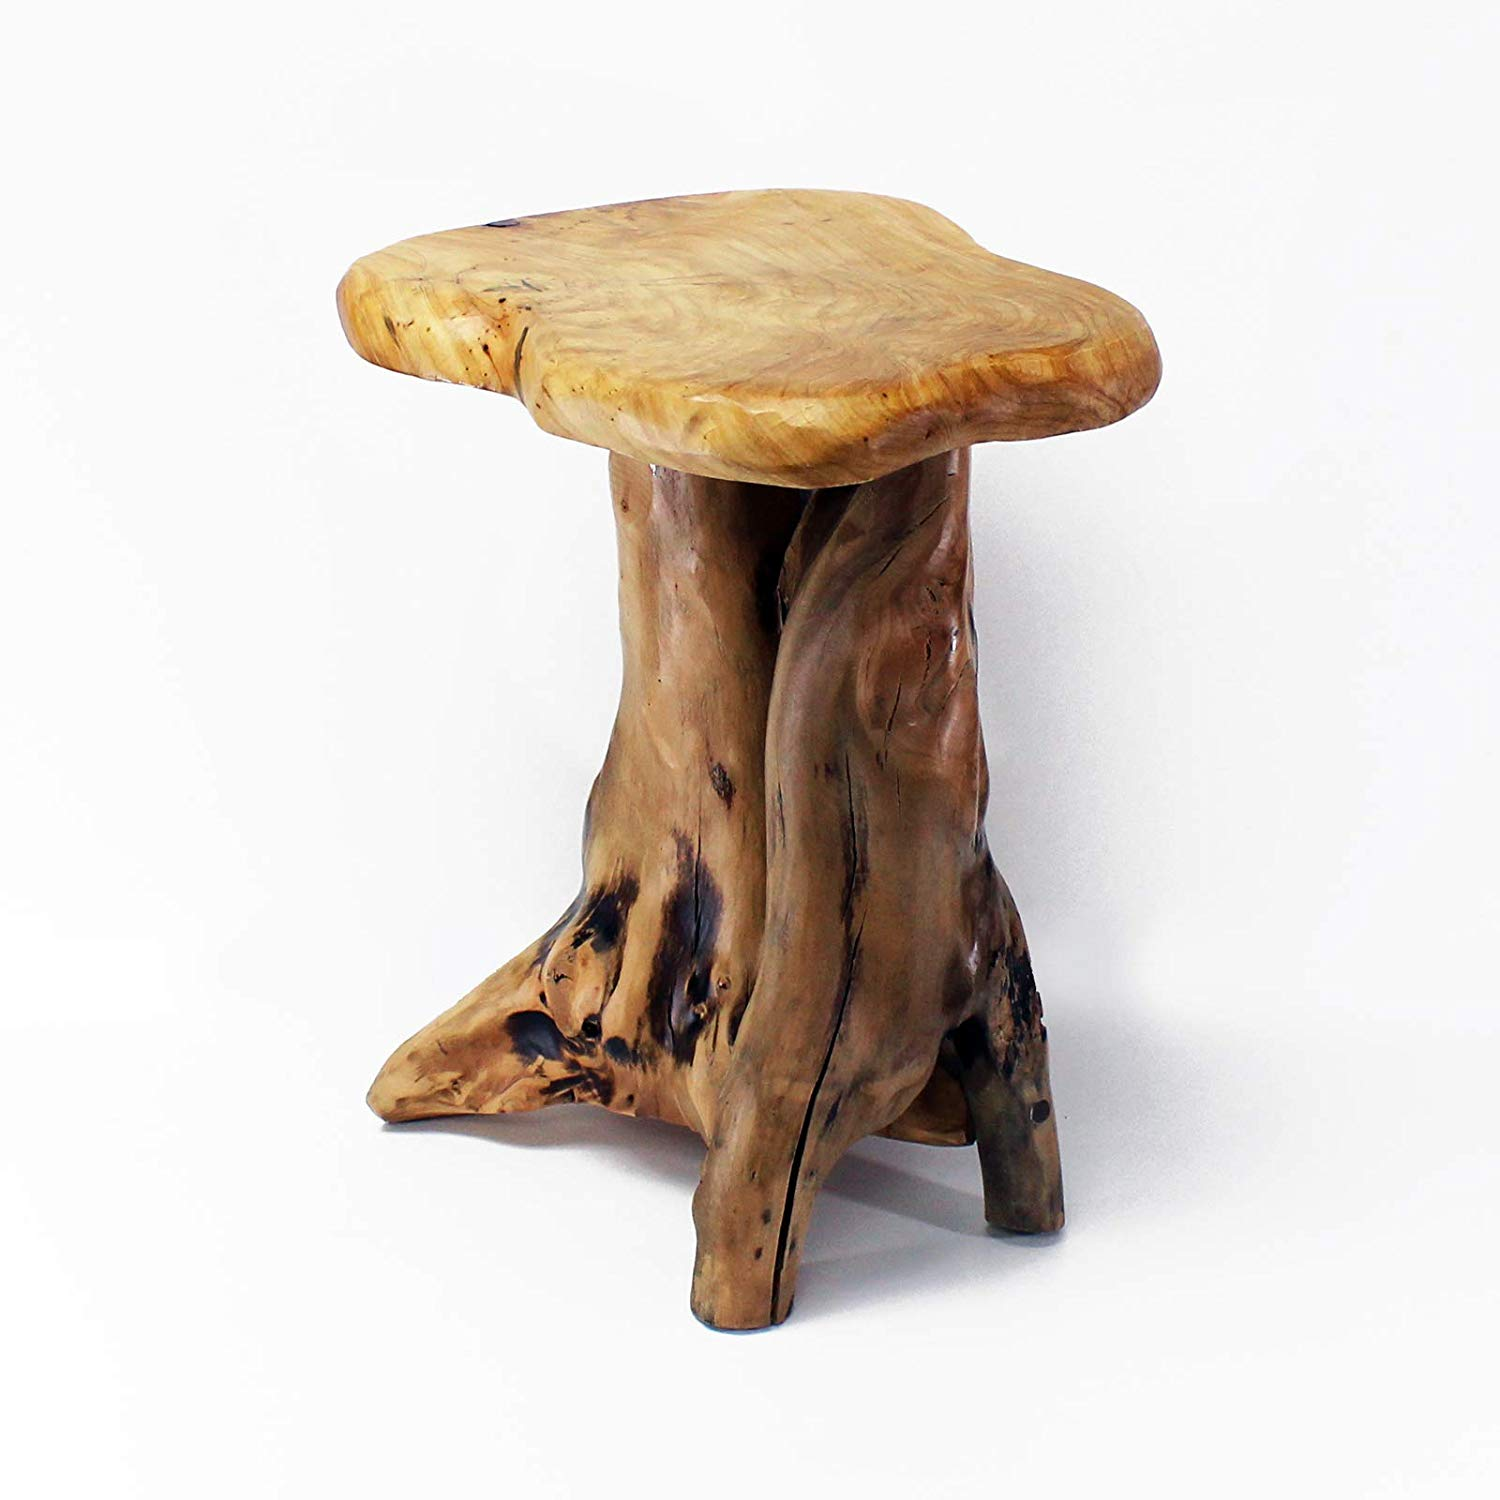 welland tree stump side table live edge stool natural accent brown wood tall home kitchen ikea clothes storage threshold marble top hexagon end chairs for living room black and